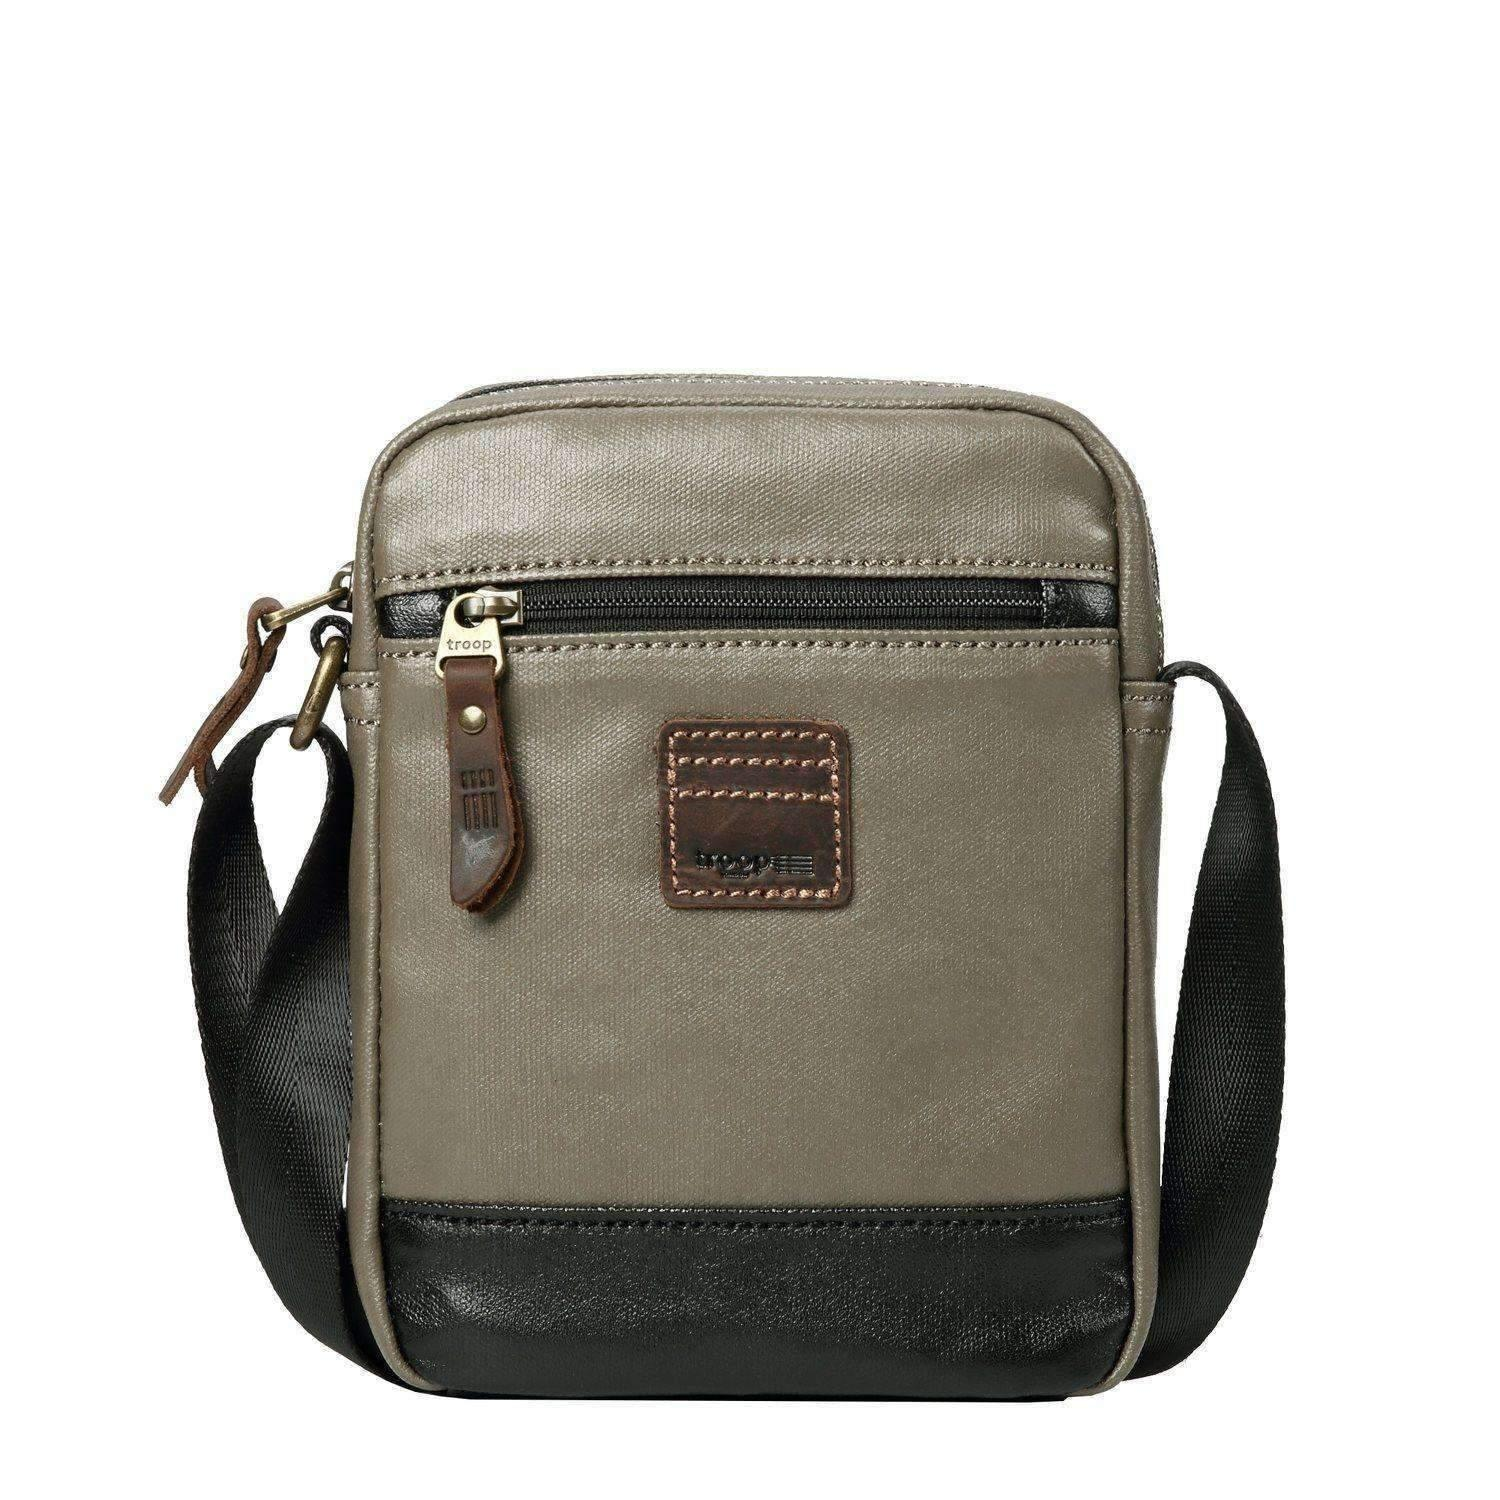 TRP0516 Troop London Heritage Coated Canvas Casual Crossbody Bag, Small Acrossbody Bag, Luggage & Bags by WYDO